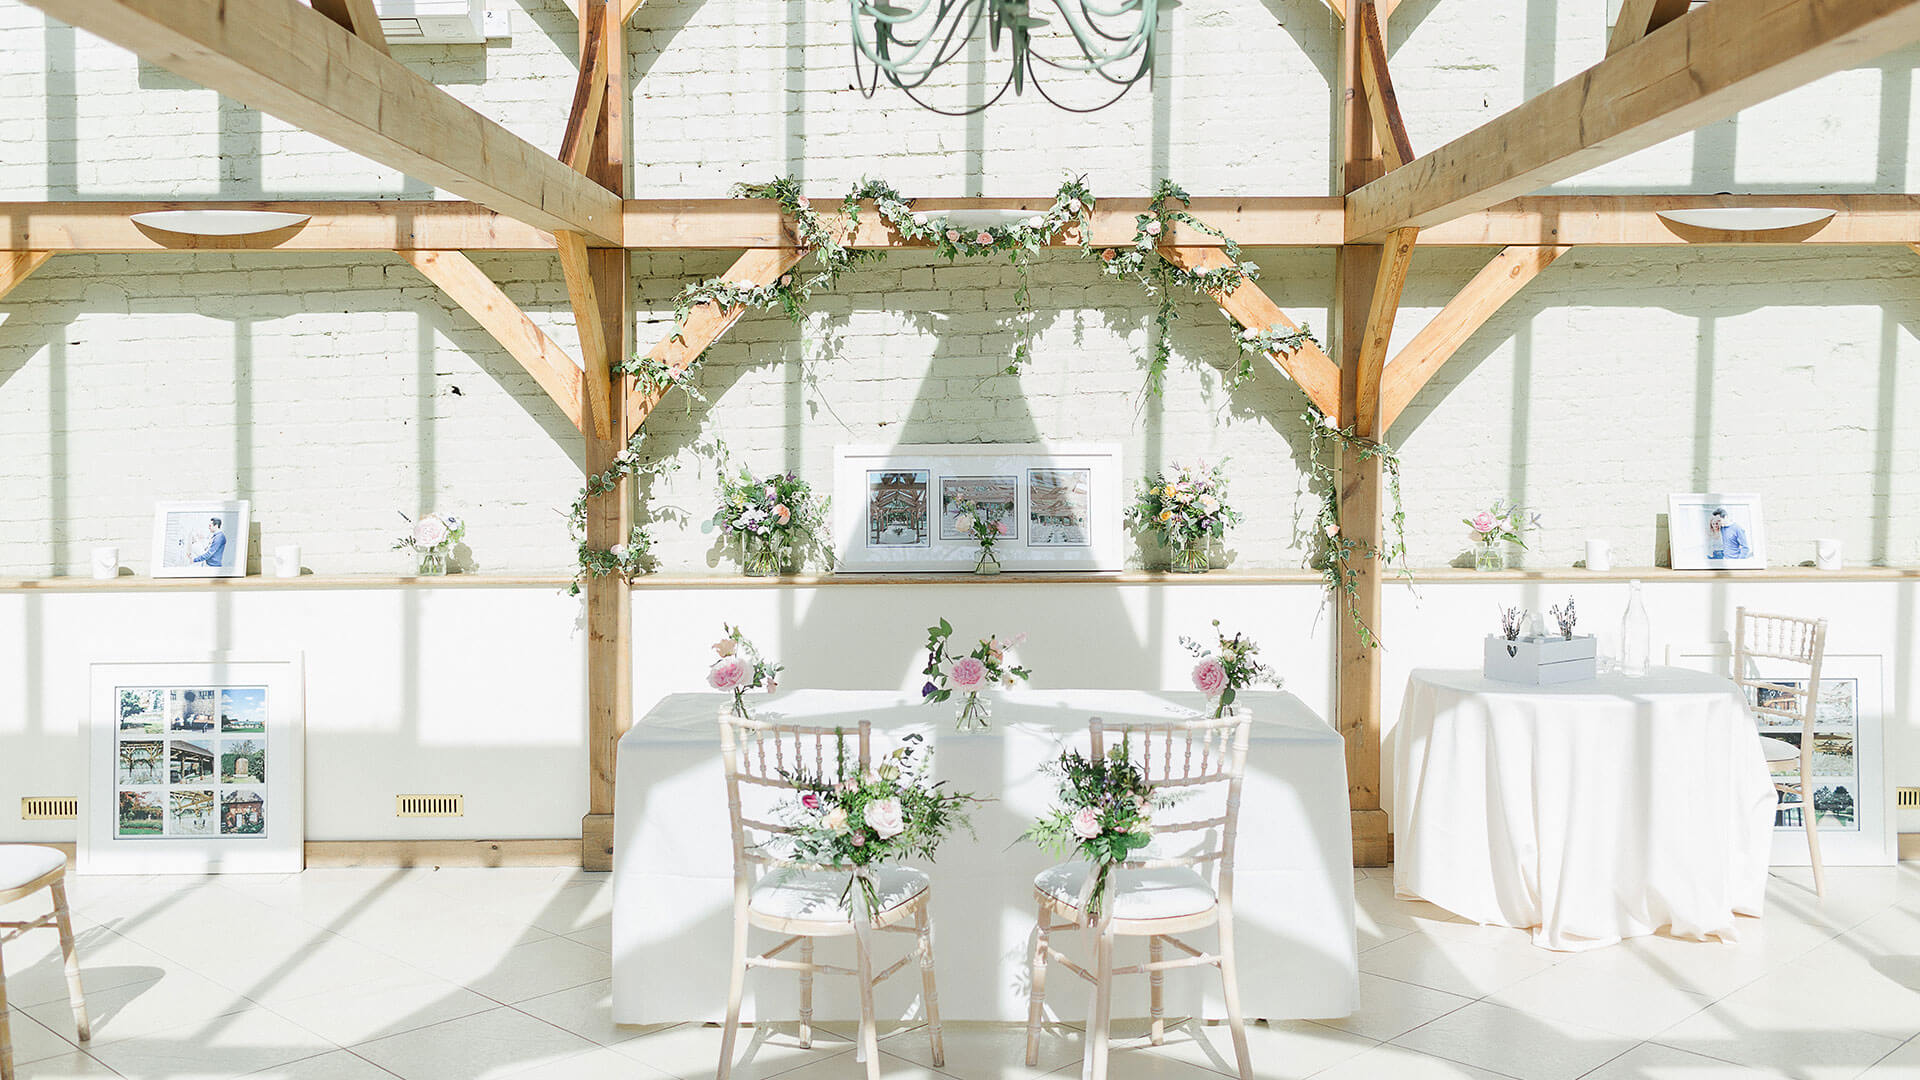 The Orangery looks beautiful with flora wrapped around the oak beams - spring wedding ideas